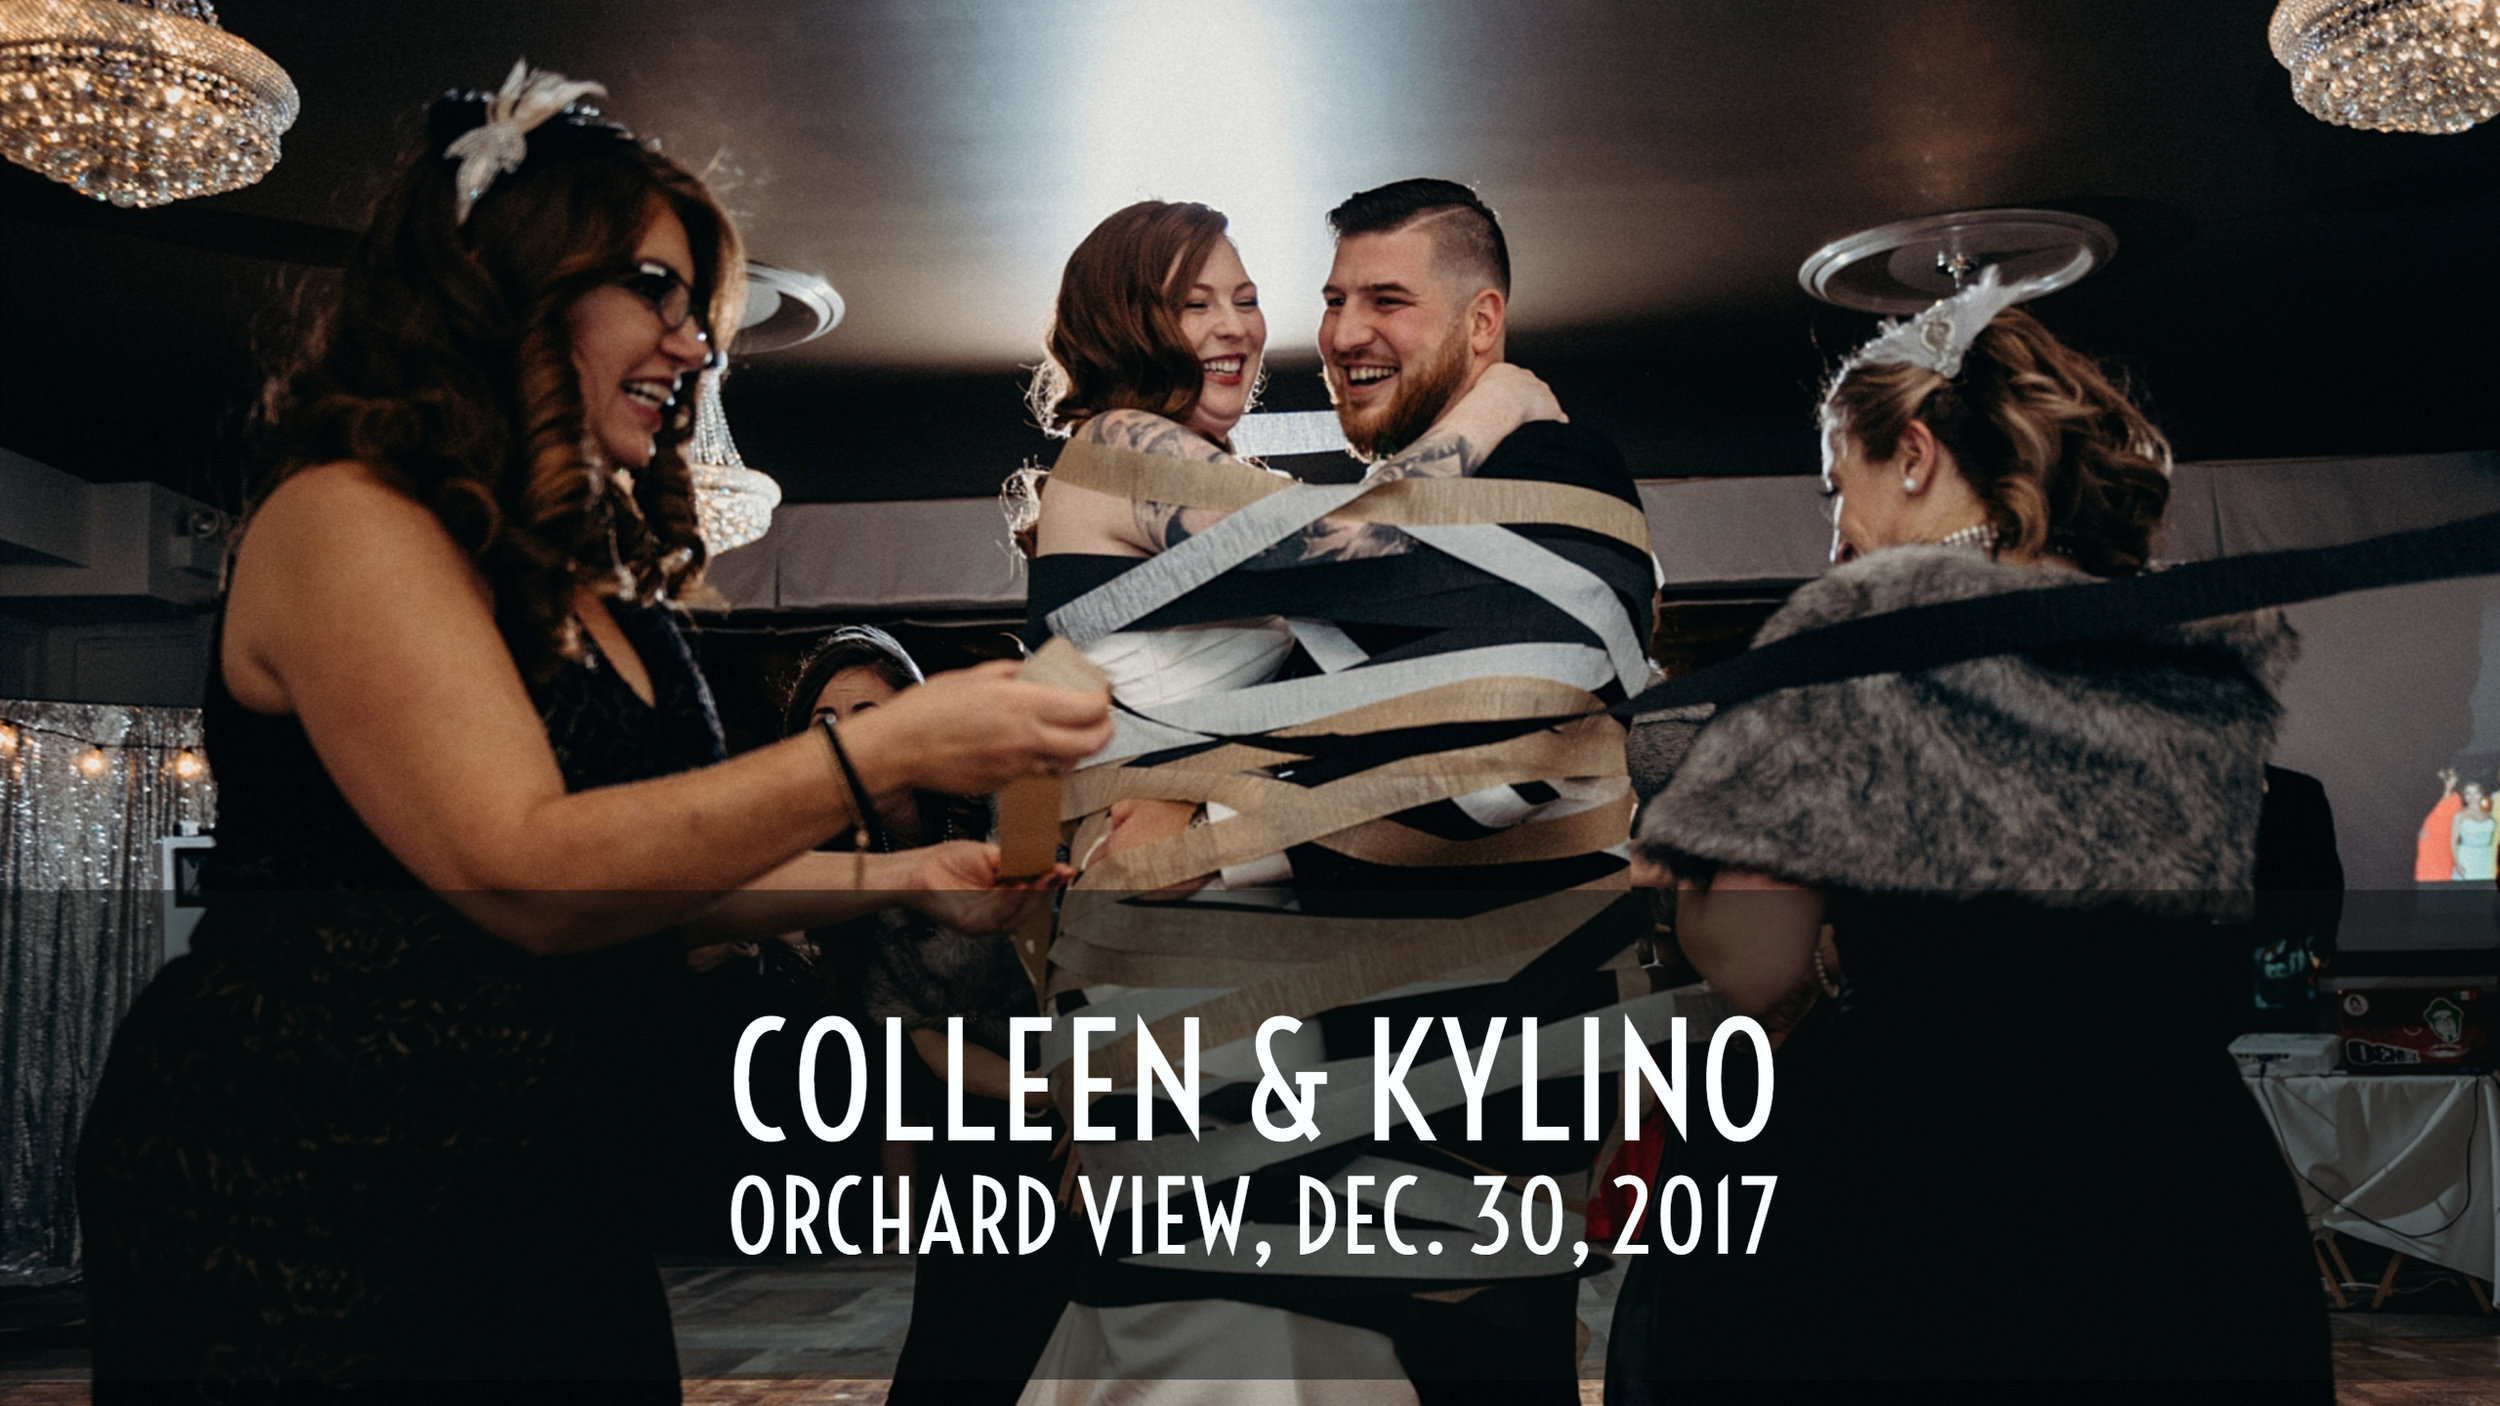 Orchard View Wedding by Mocha Tree Studios Ottawa Wedding and Engagement Photographer and Videographer Dark Moody Intimate Authentic Modern Romantic Cinematic Best Candid 45